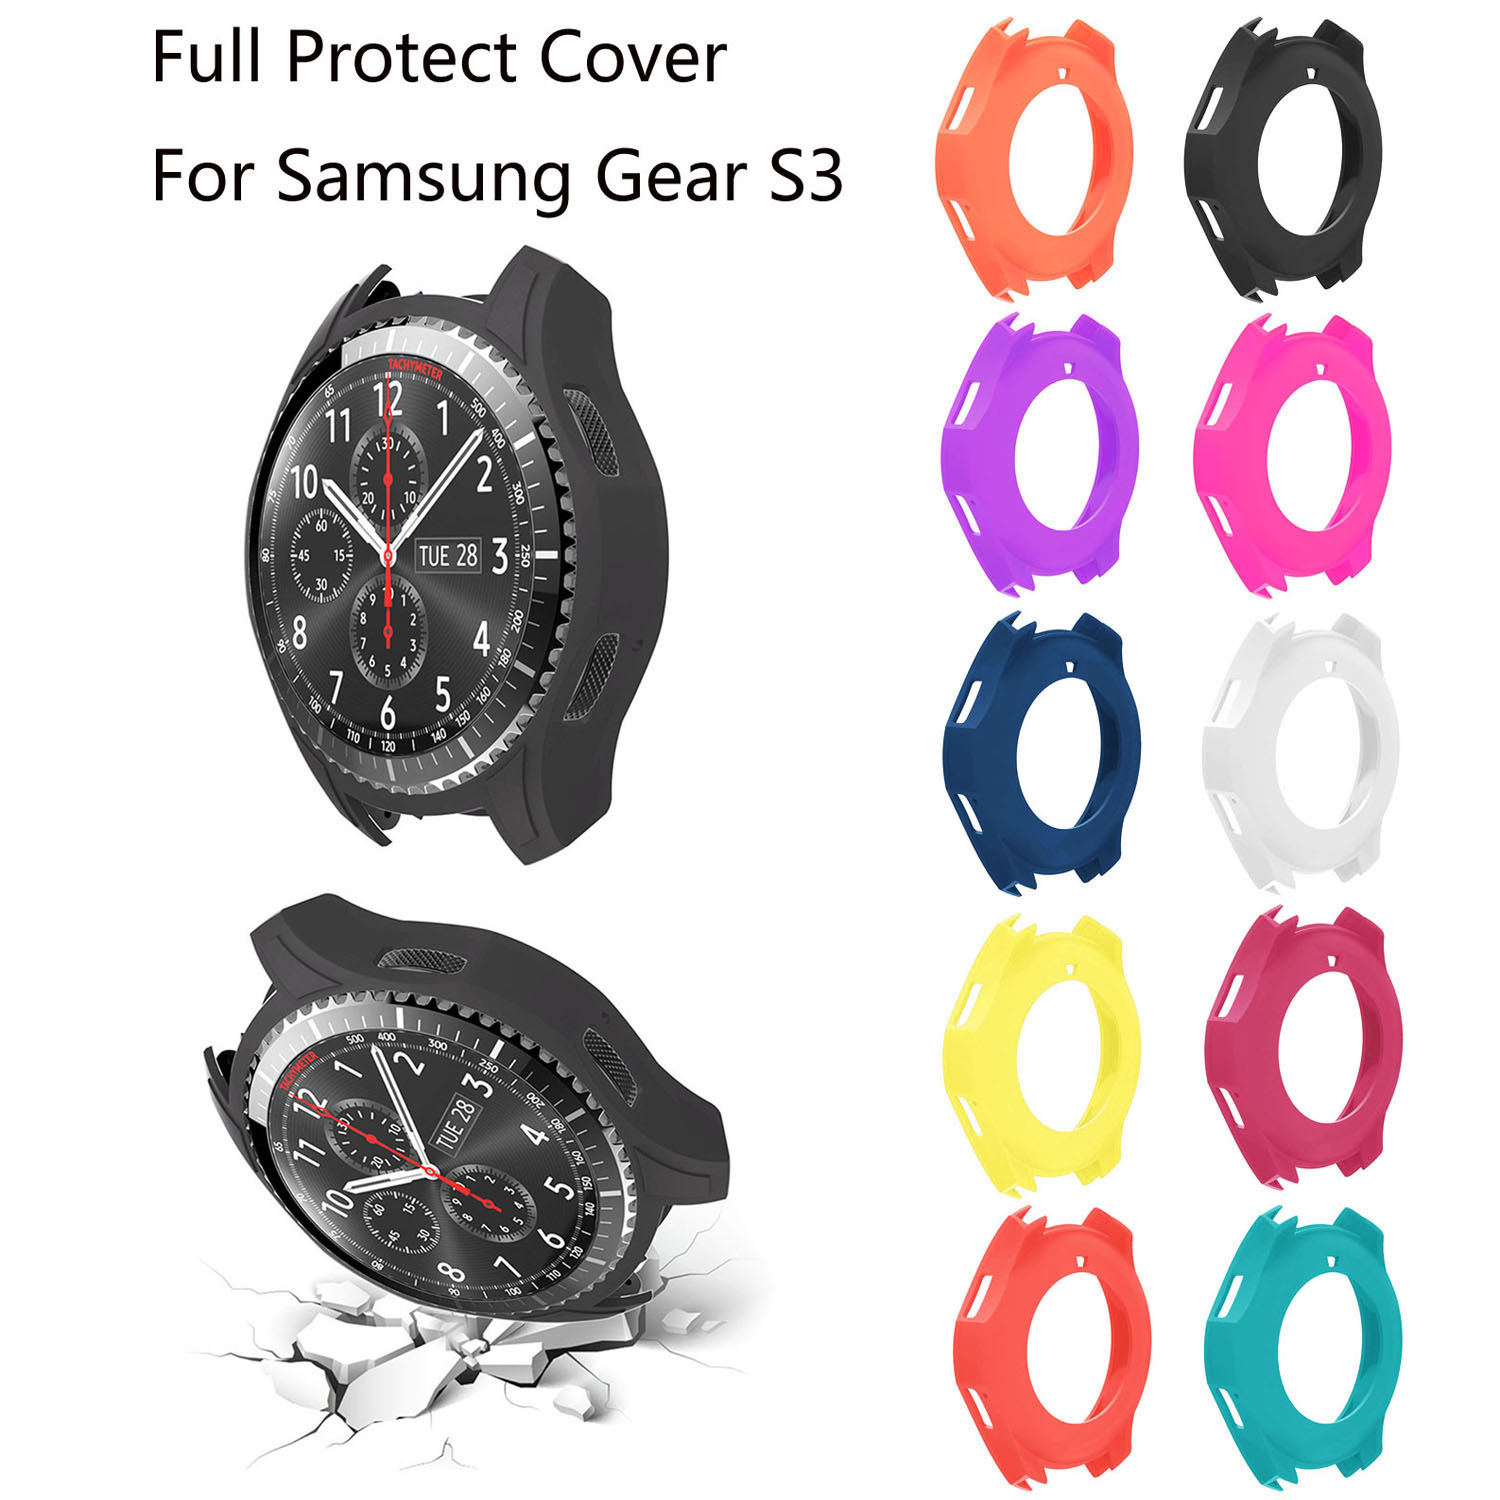 все цены на Soft Silicone Protective Cover for Samsung Galaxy Gear S3 Frontier Smart Watch Case Cover Watch Band